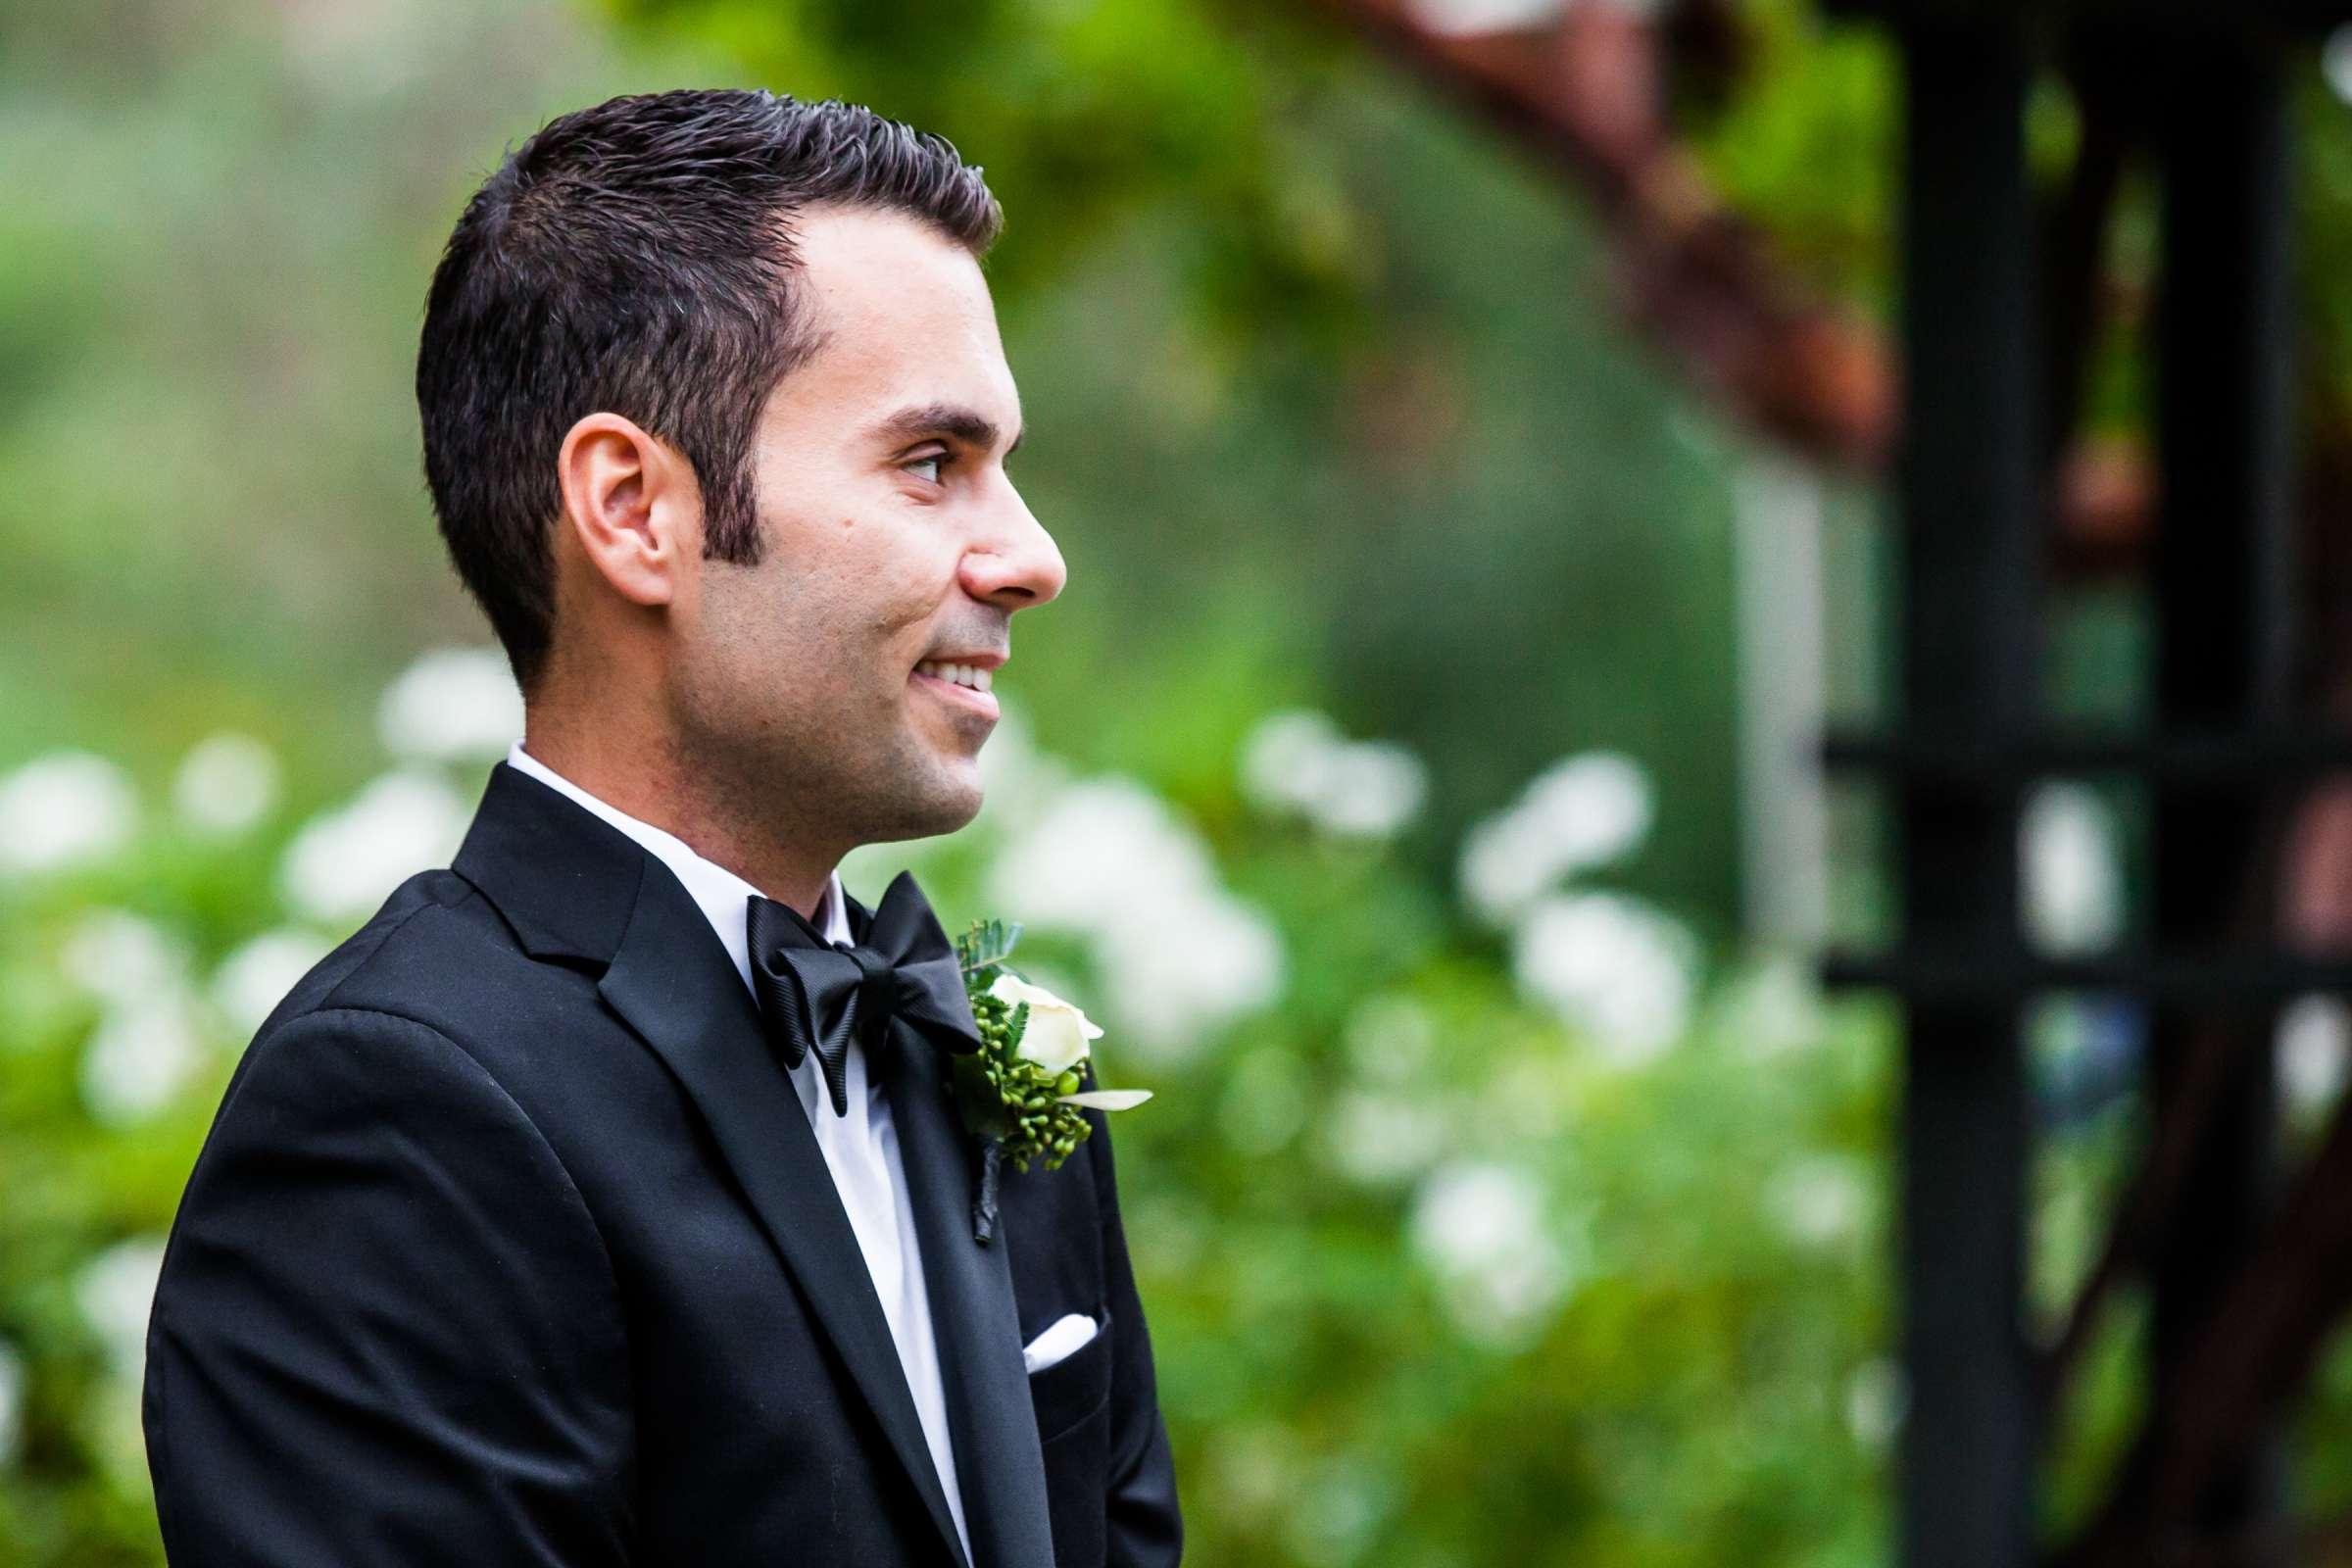 Rancho Bernardo Inn Wedding coordinated by Très Chic Events, Stefania and Nicholas Wedding Photo #34 by True Photography